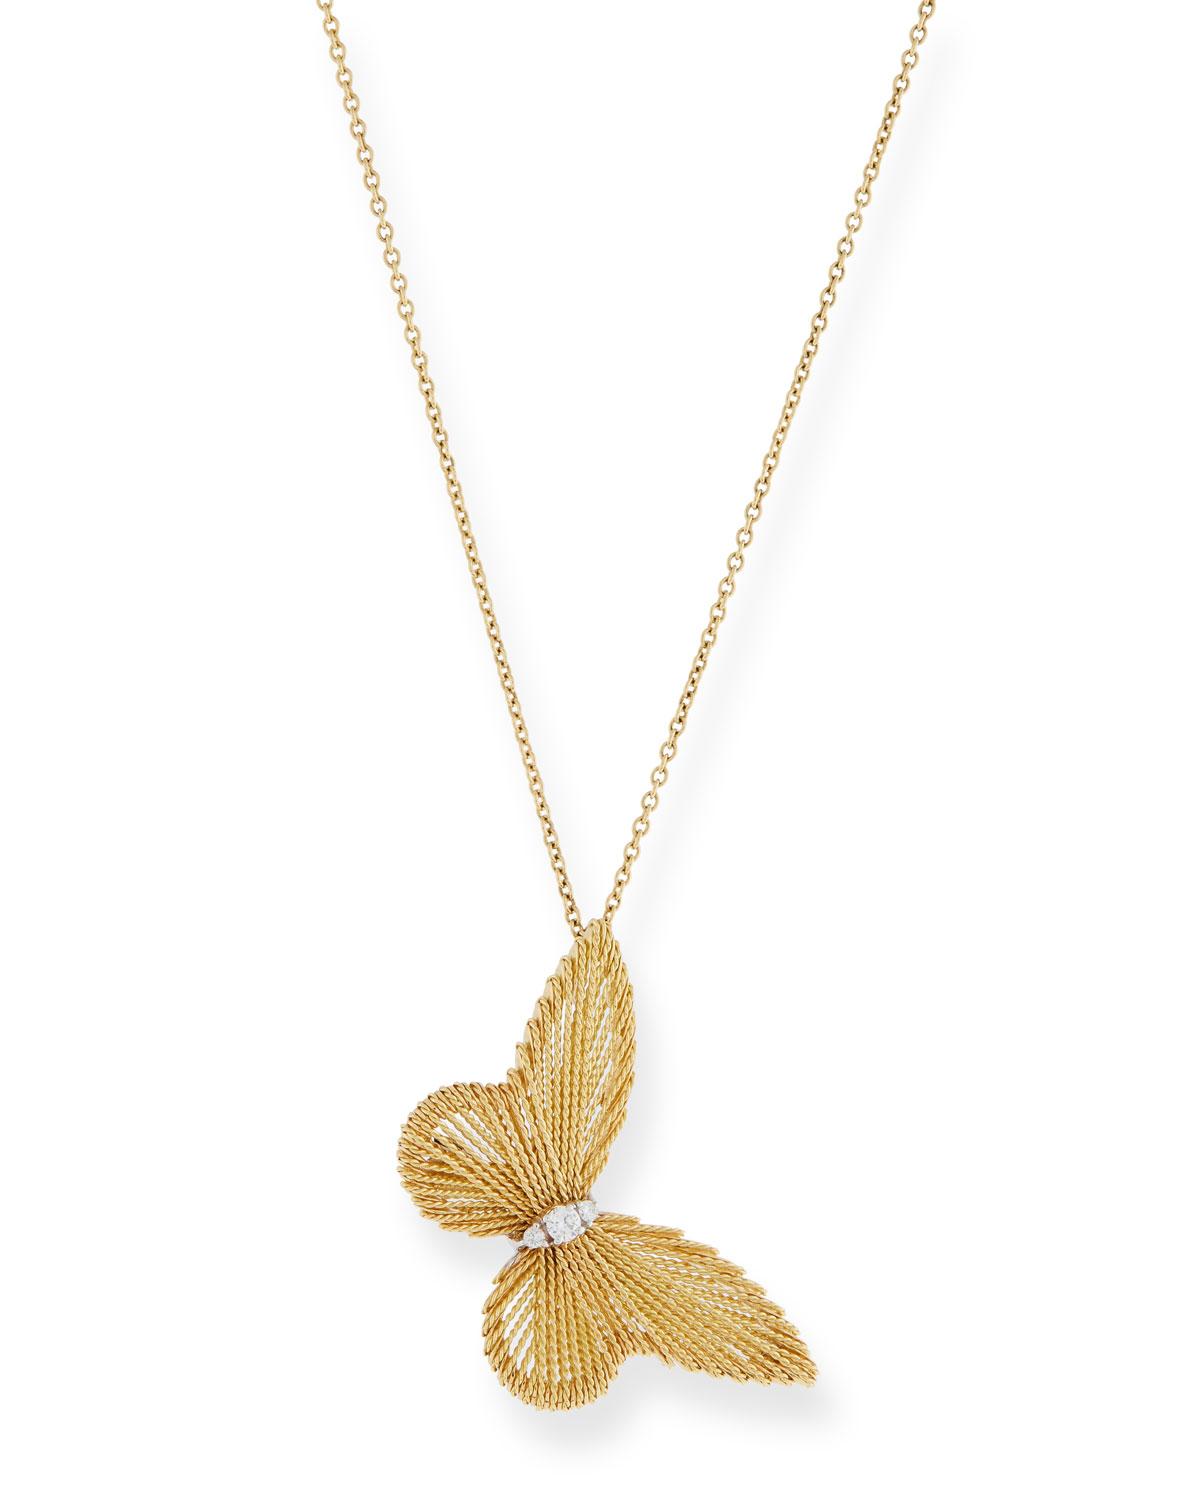 Staurino Renaissance 18k Gold Butterfly Pendant Necklace